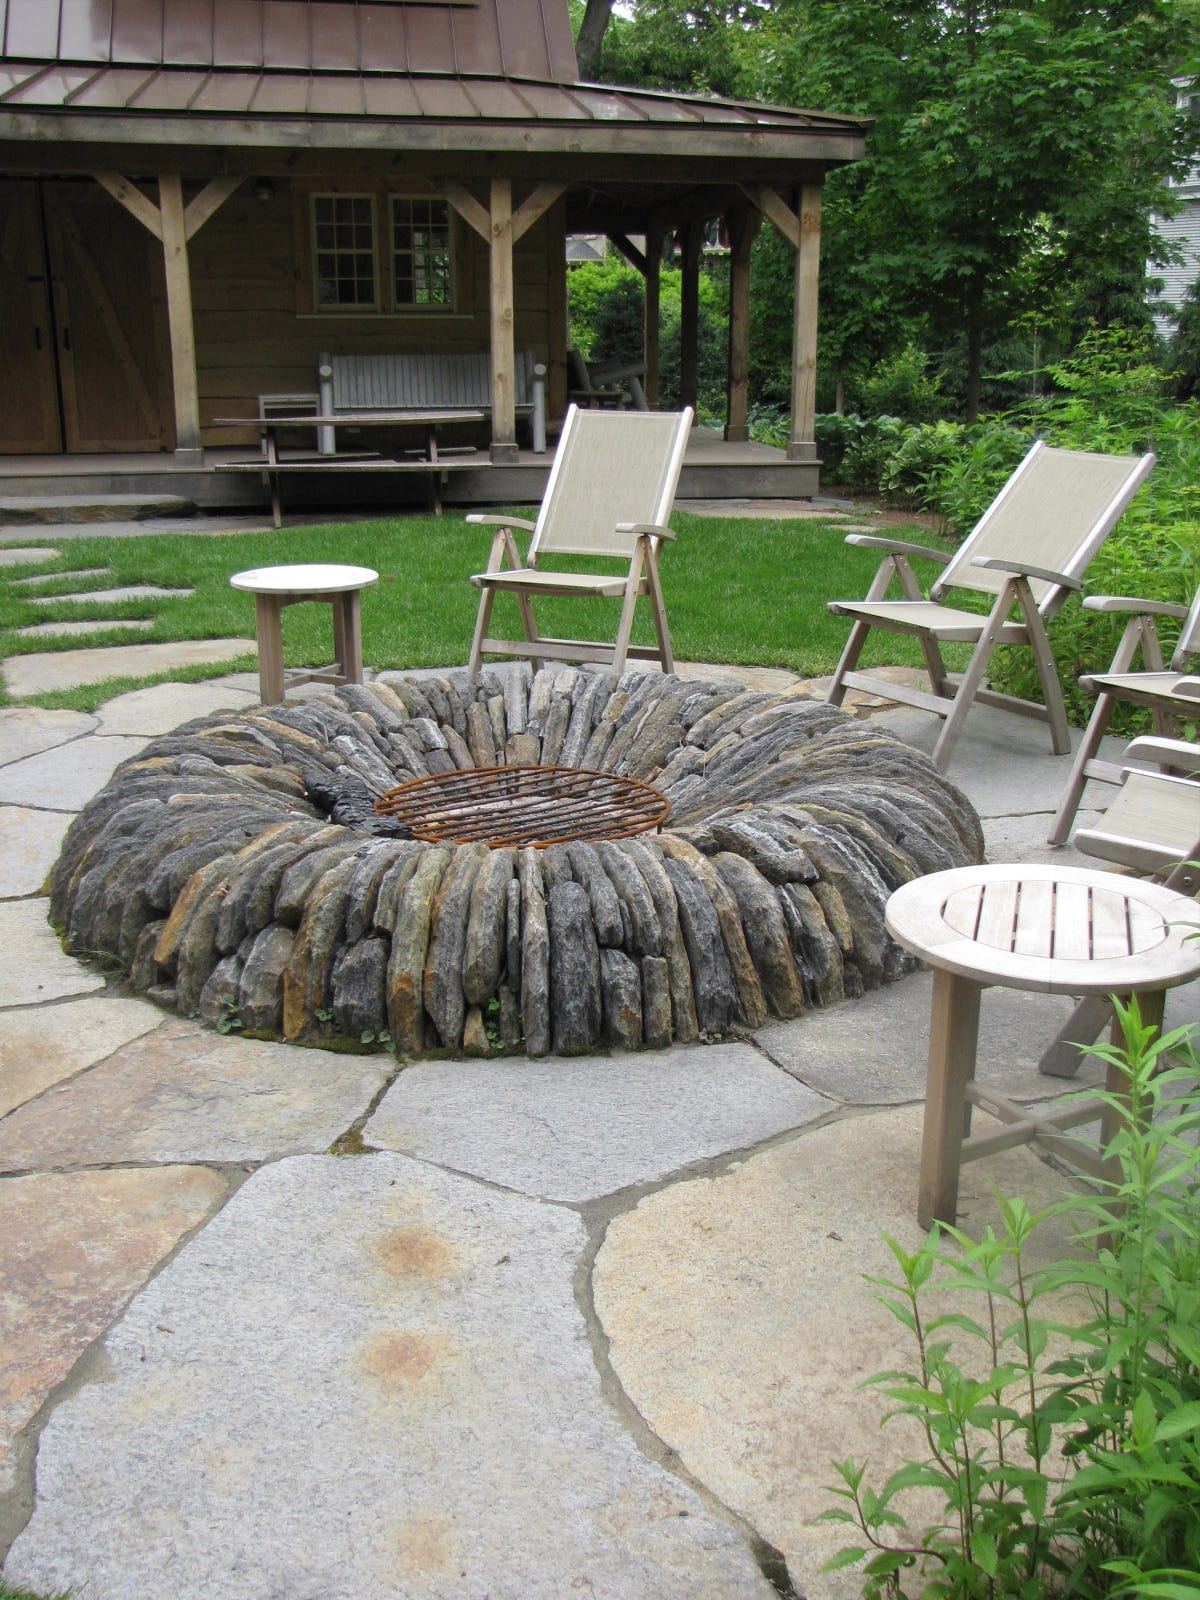 Gregory Lombardi Designed This Outdoor Fire Pit Using Connecticut Goshen Stone The Design Retains A Modern Yet Natural And Earthy Feeling